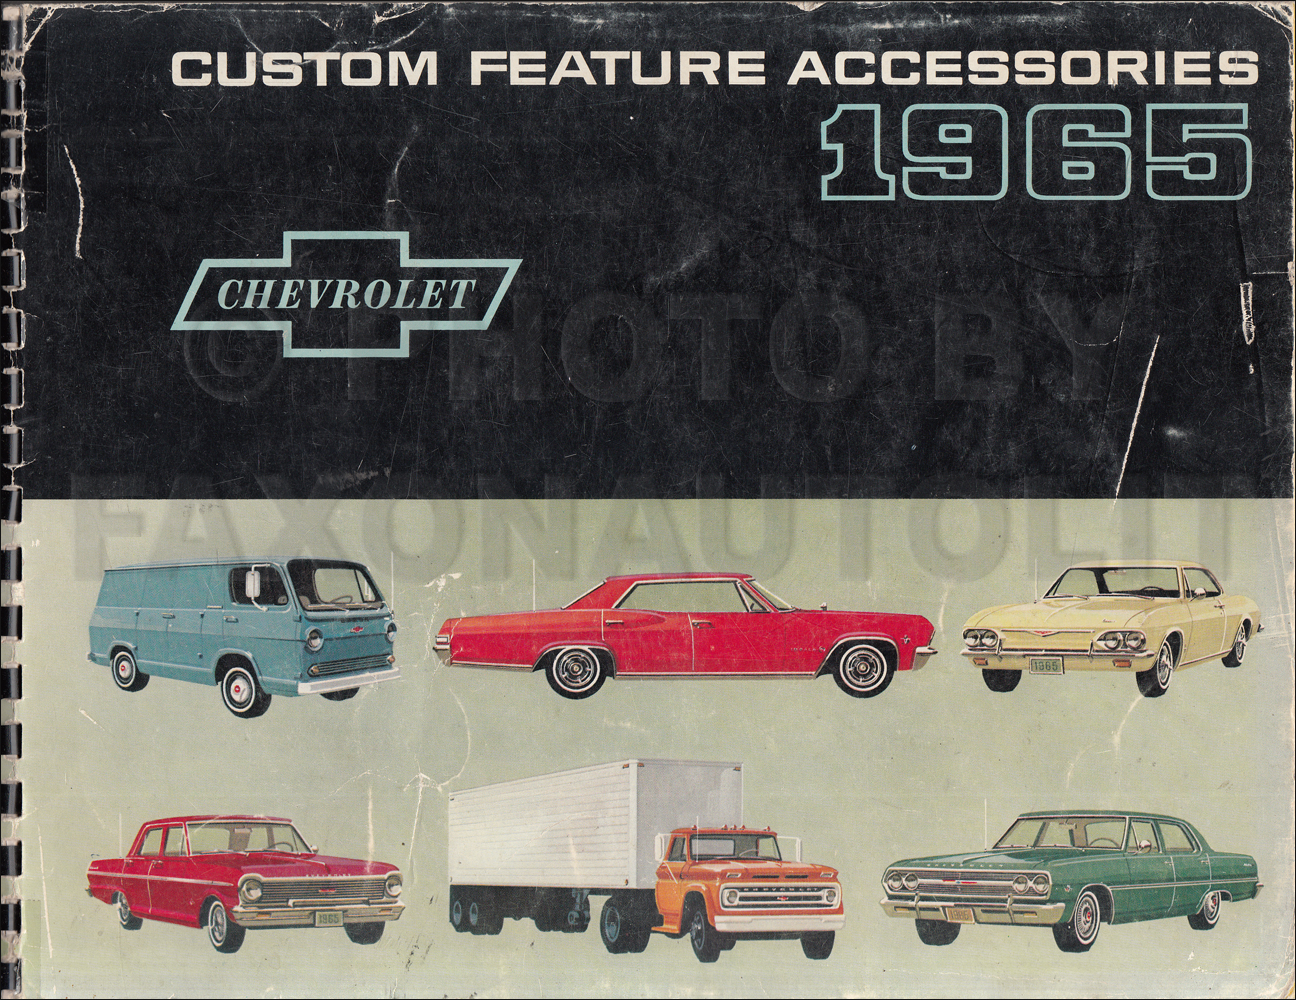 1965 Chevrolet Custom Feature Accessories Dealer Album Original